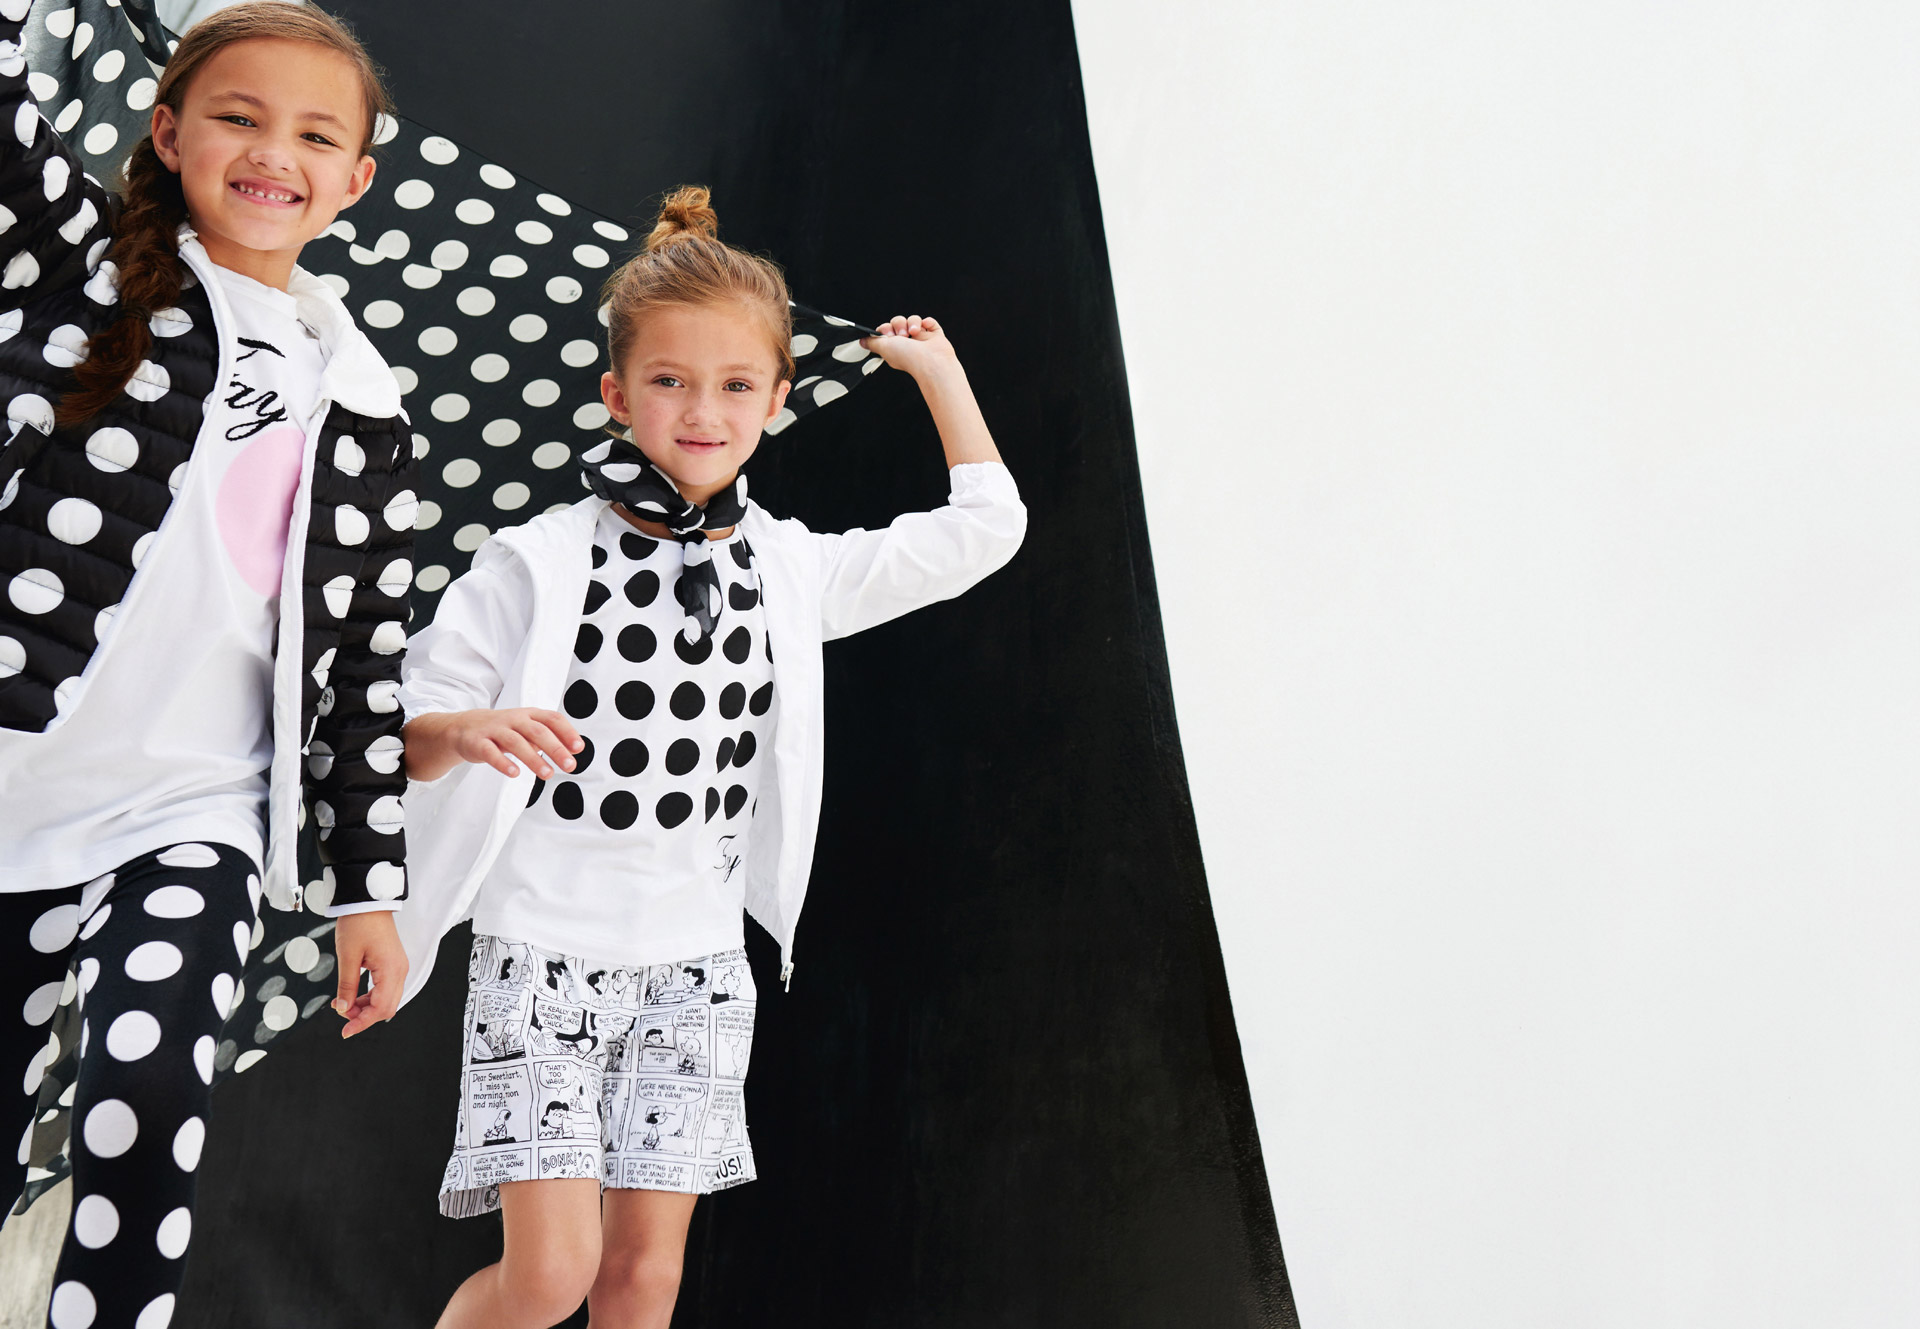 finest selection c3a33 39e74 Fay junior spring summer 2016 in elegant black and white ...